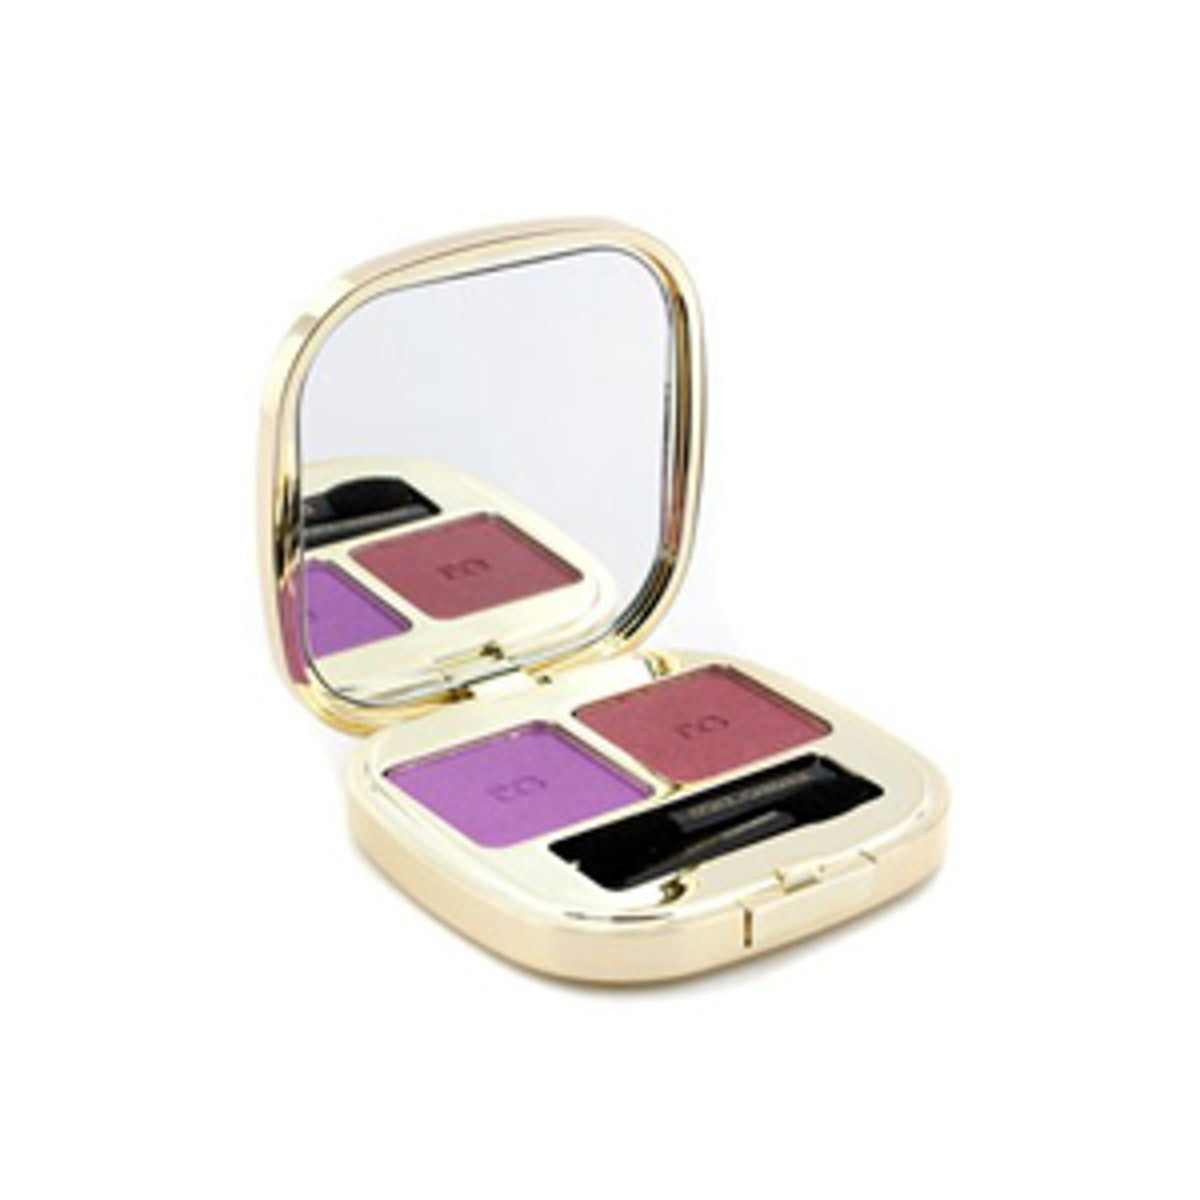 The Eyeshadow Smooth Eye Colour Duo in Blossom